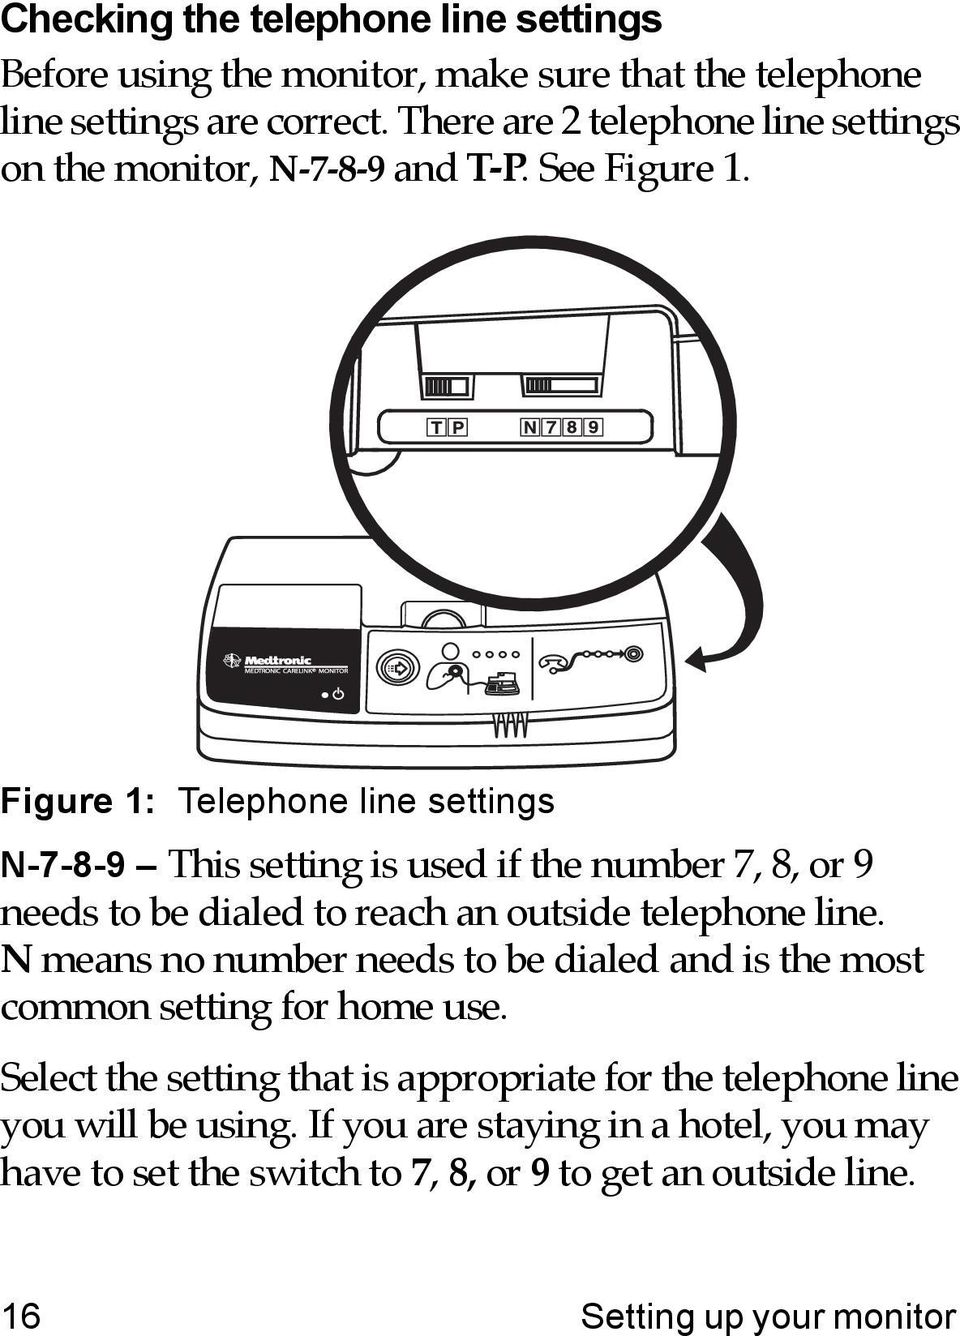 Figure 1: Telephone line settings N-7-8-9 This setting is used if the number 7, 8, or 9 needs to be dialed to reach an outside telephone line.